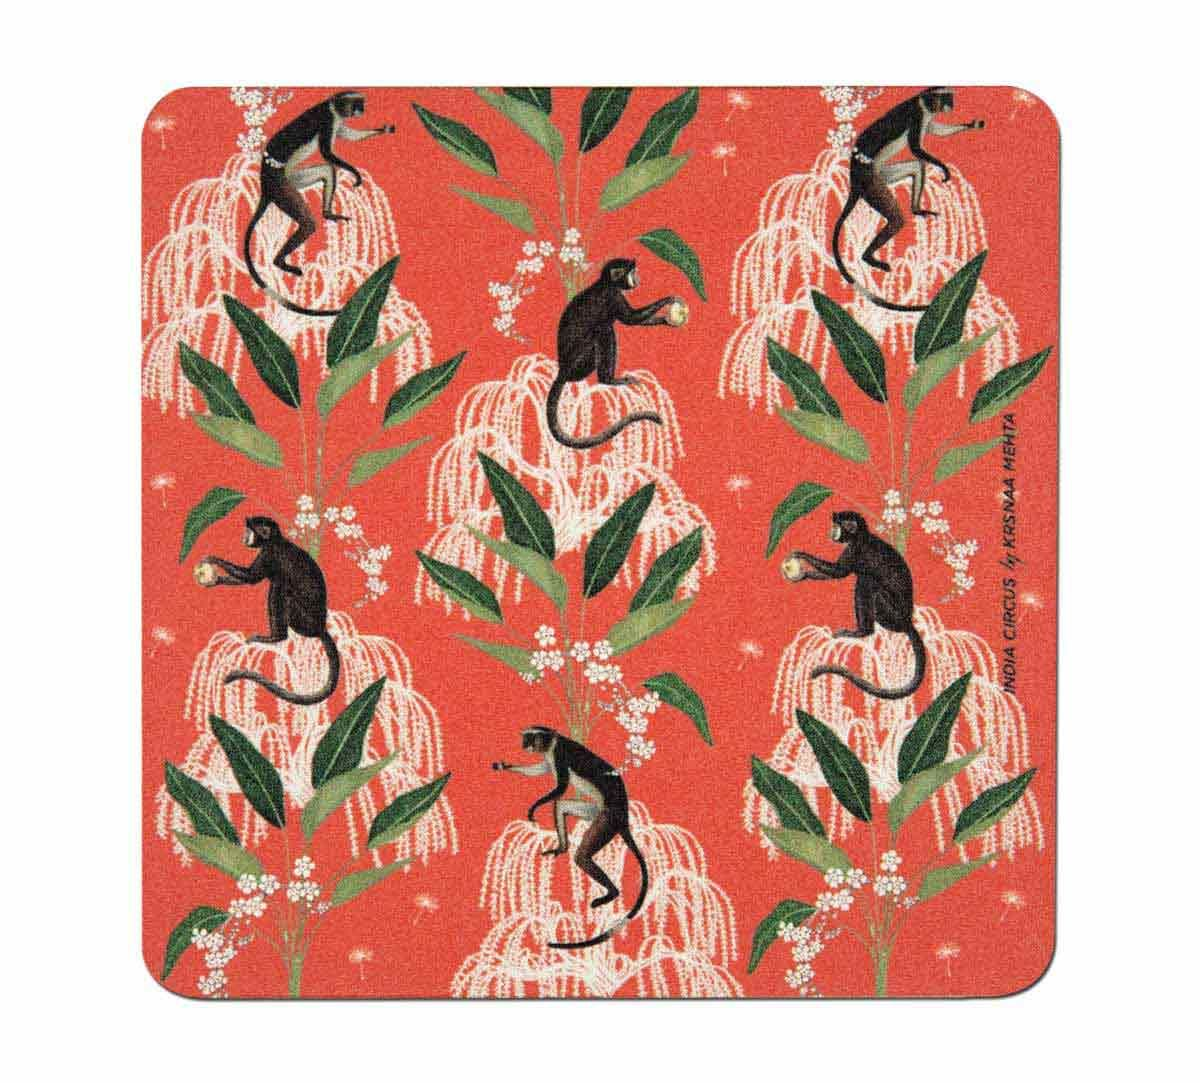 India Circus Monkey Games Table Coaster Set of 6